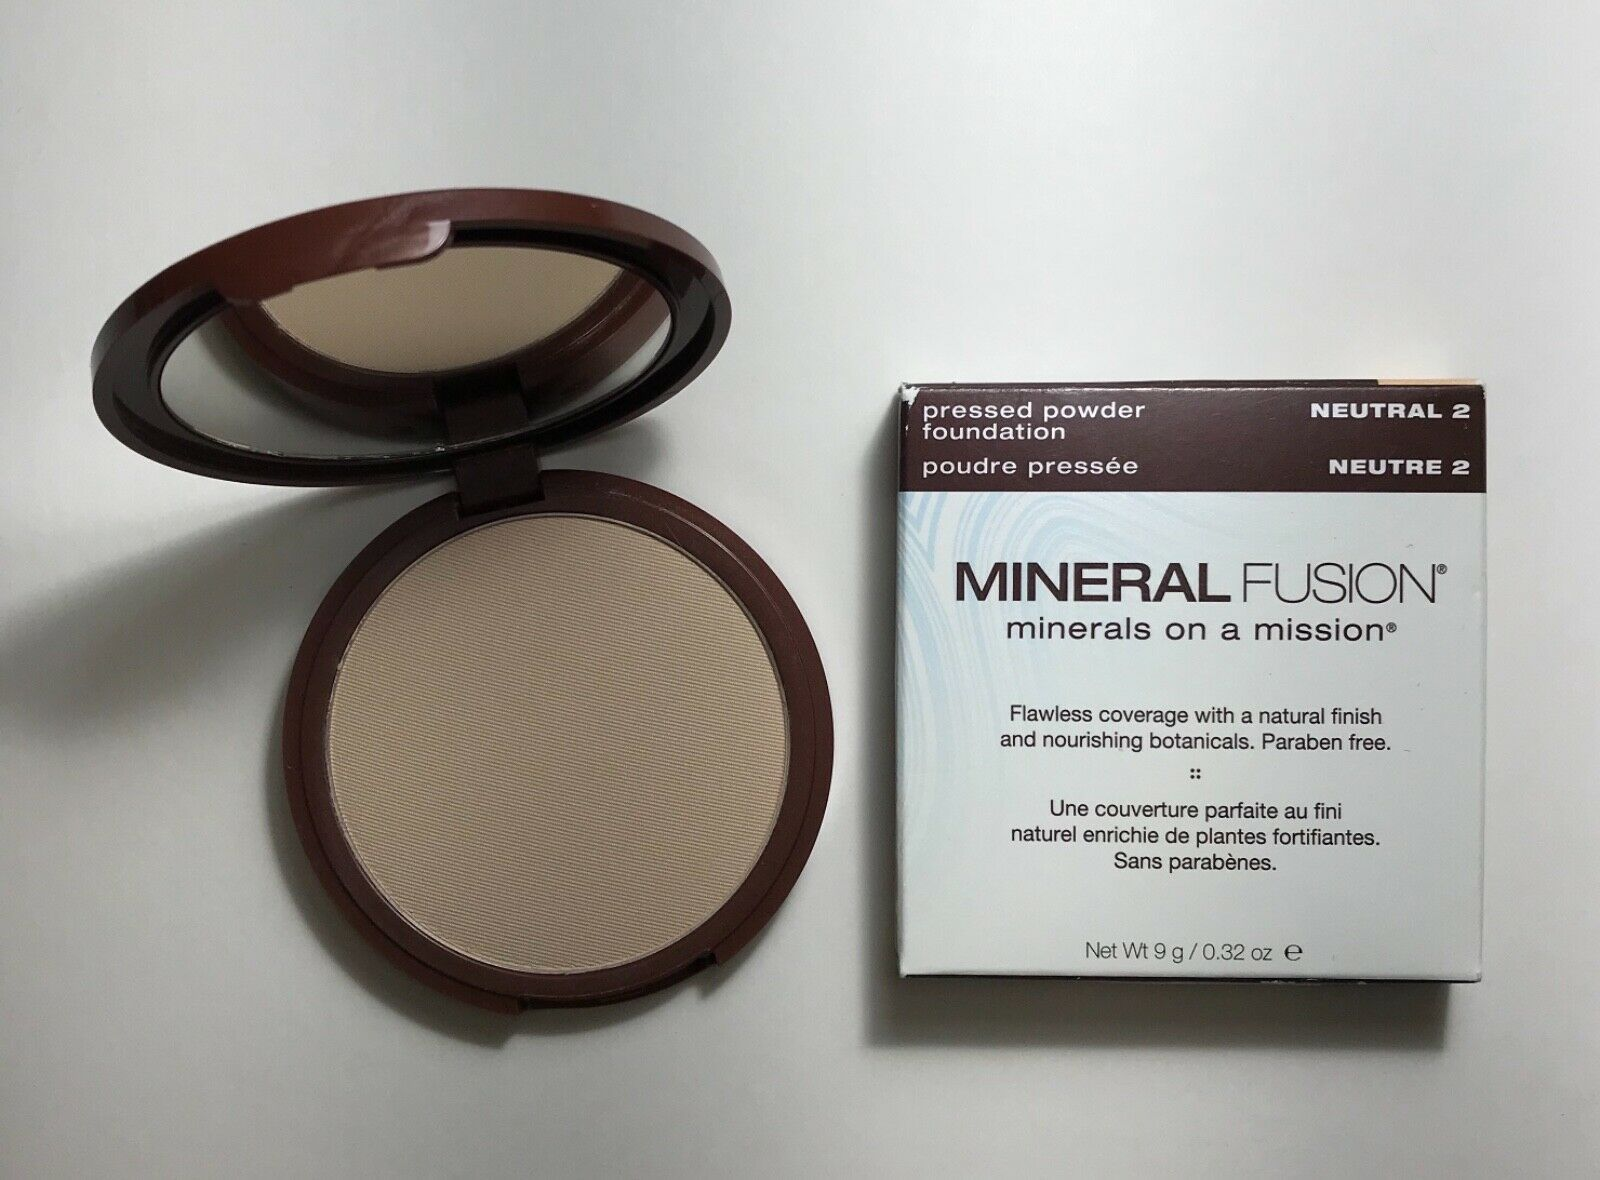 Primary image for Mineral Fusion Natural Brands Vegan Pressed Powder Foundation in color Neutral 2